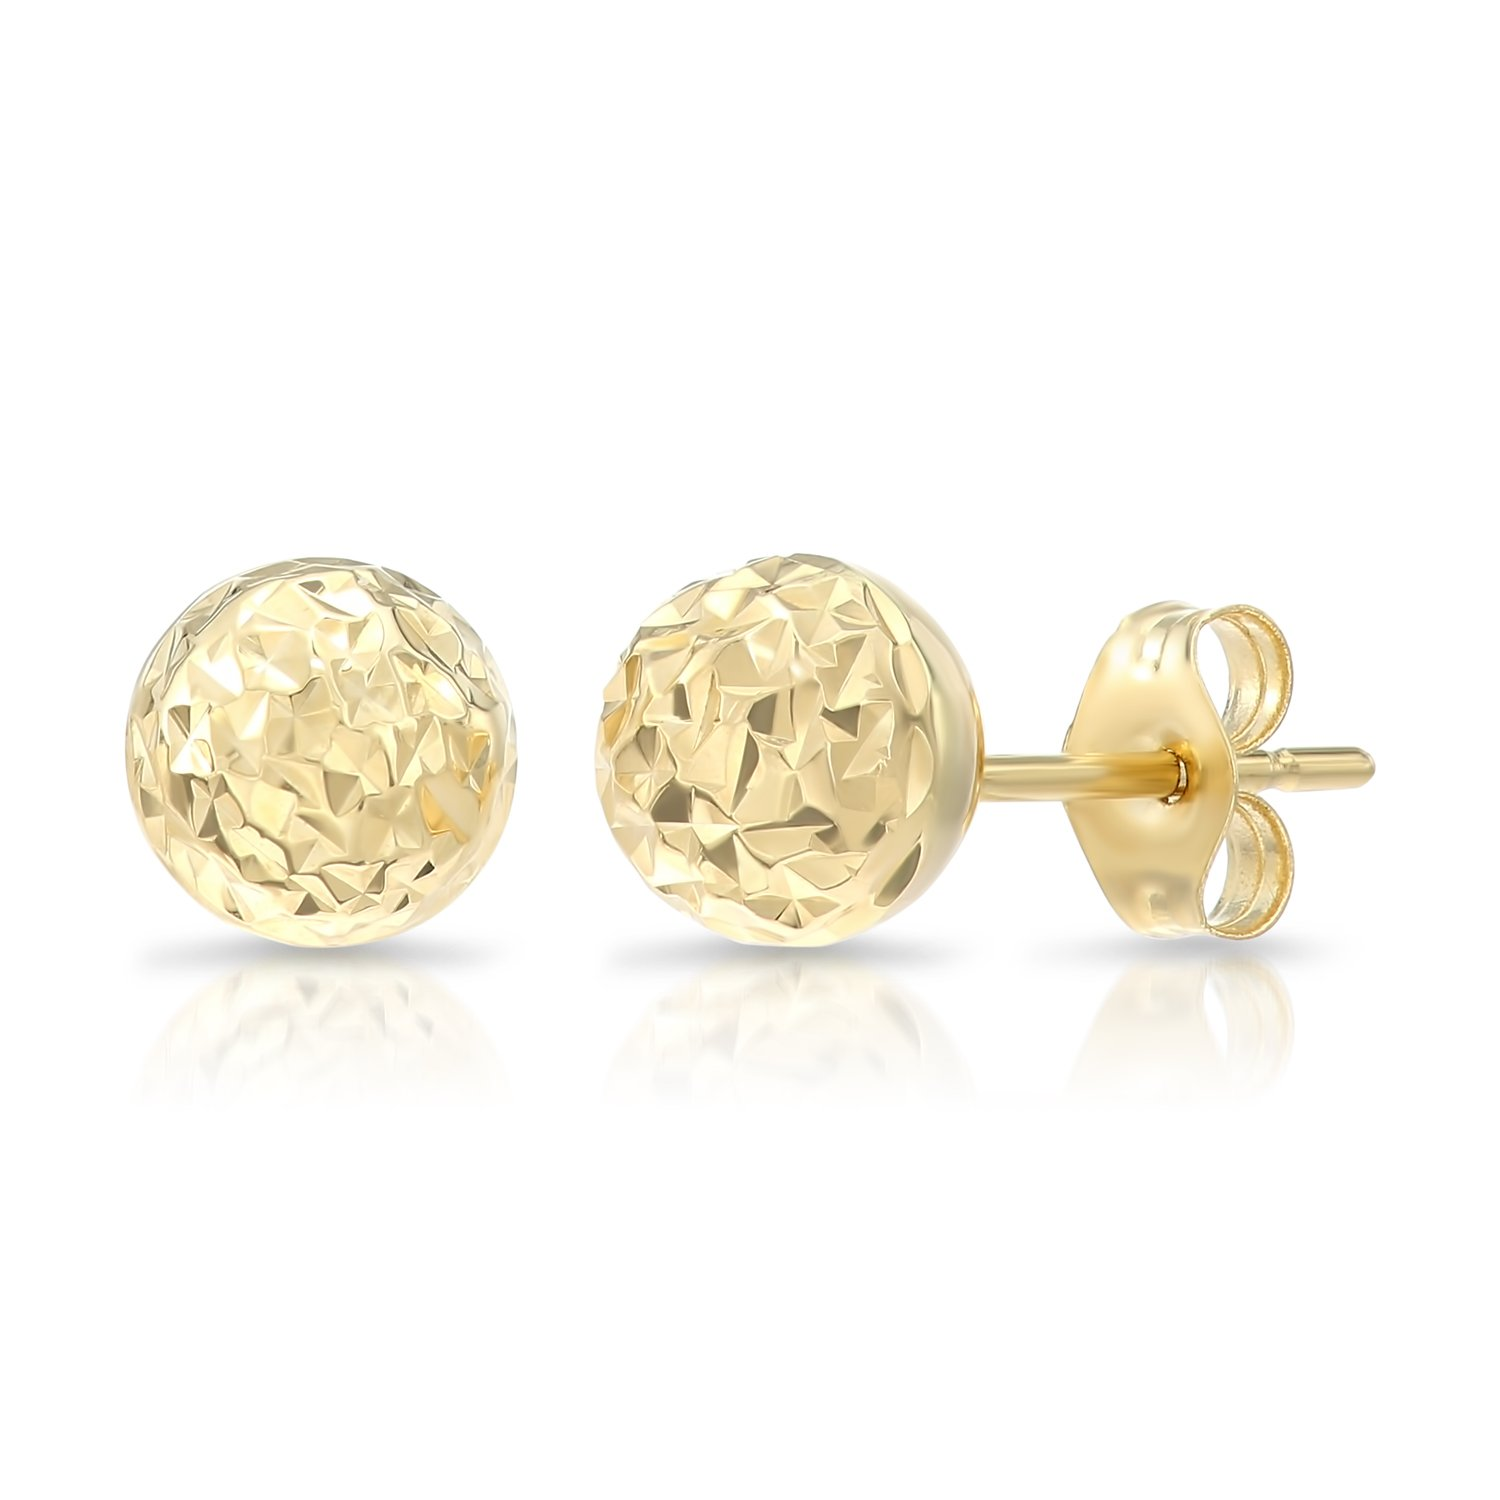 14k Yellow Gold Diamond-cut Ball Stud Earrings (6mm)